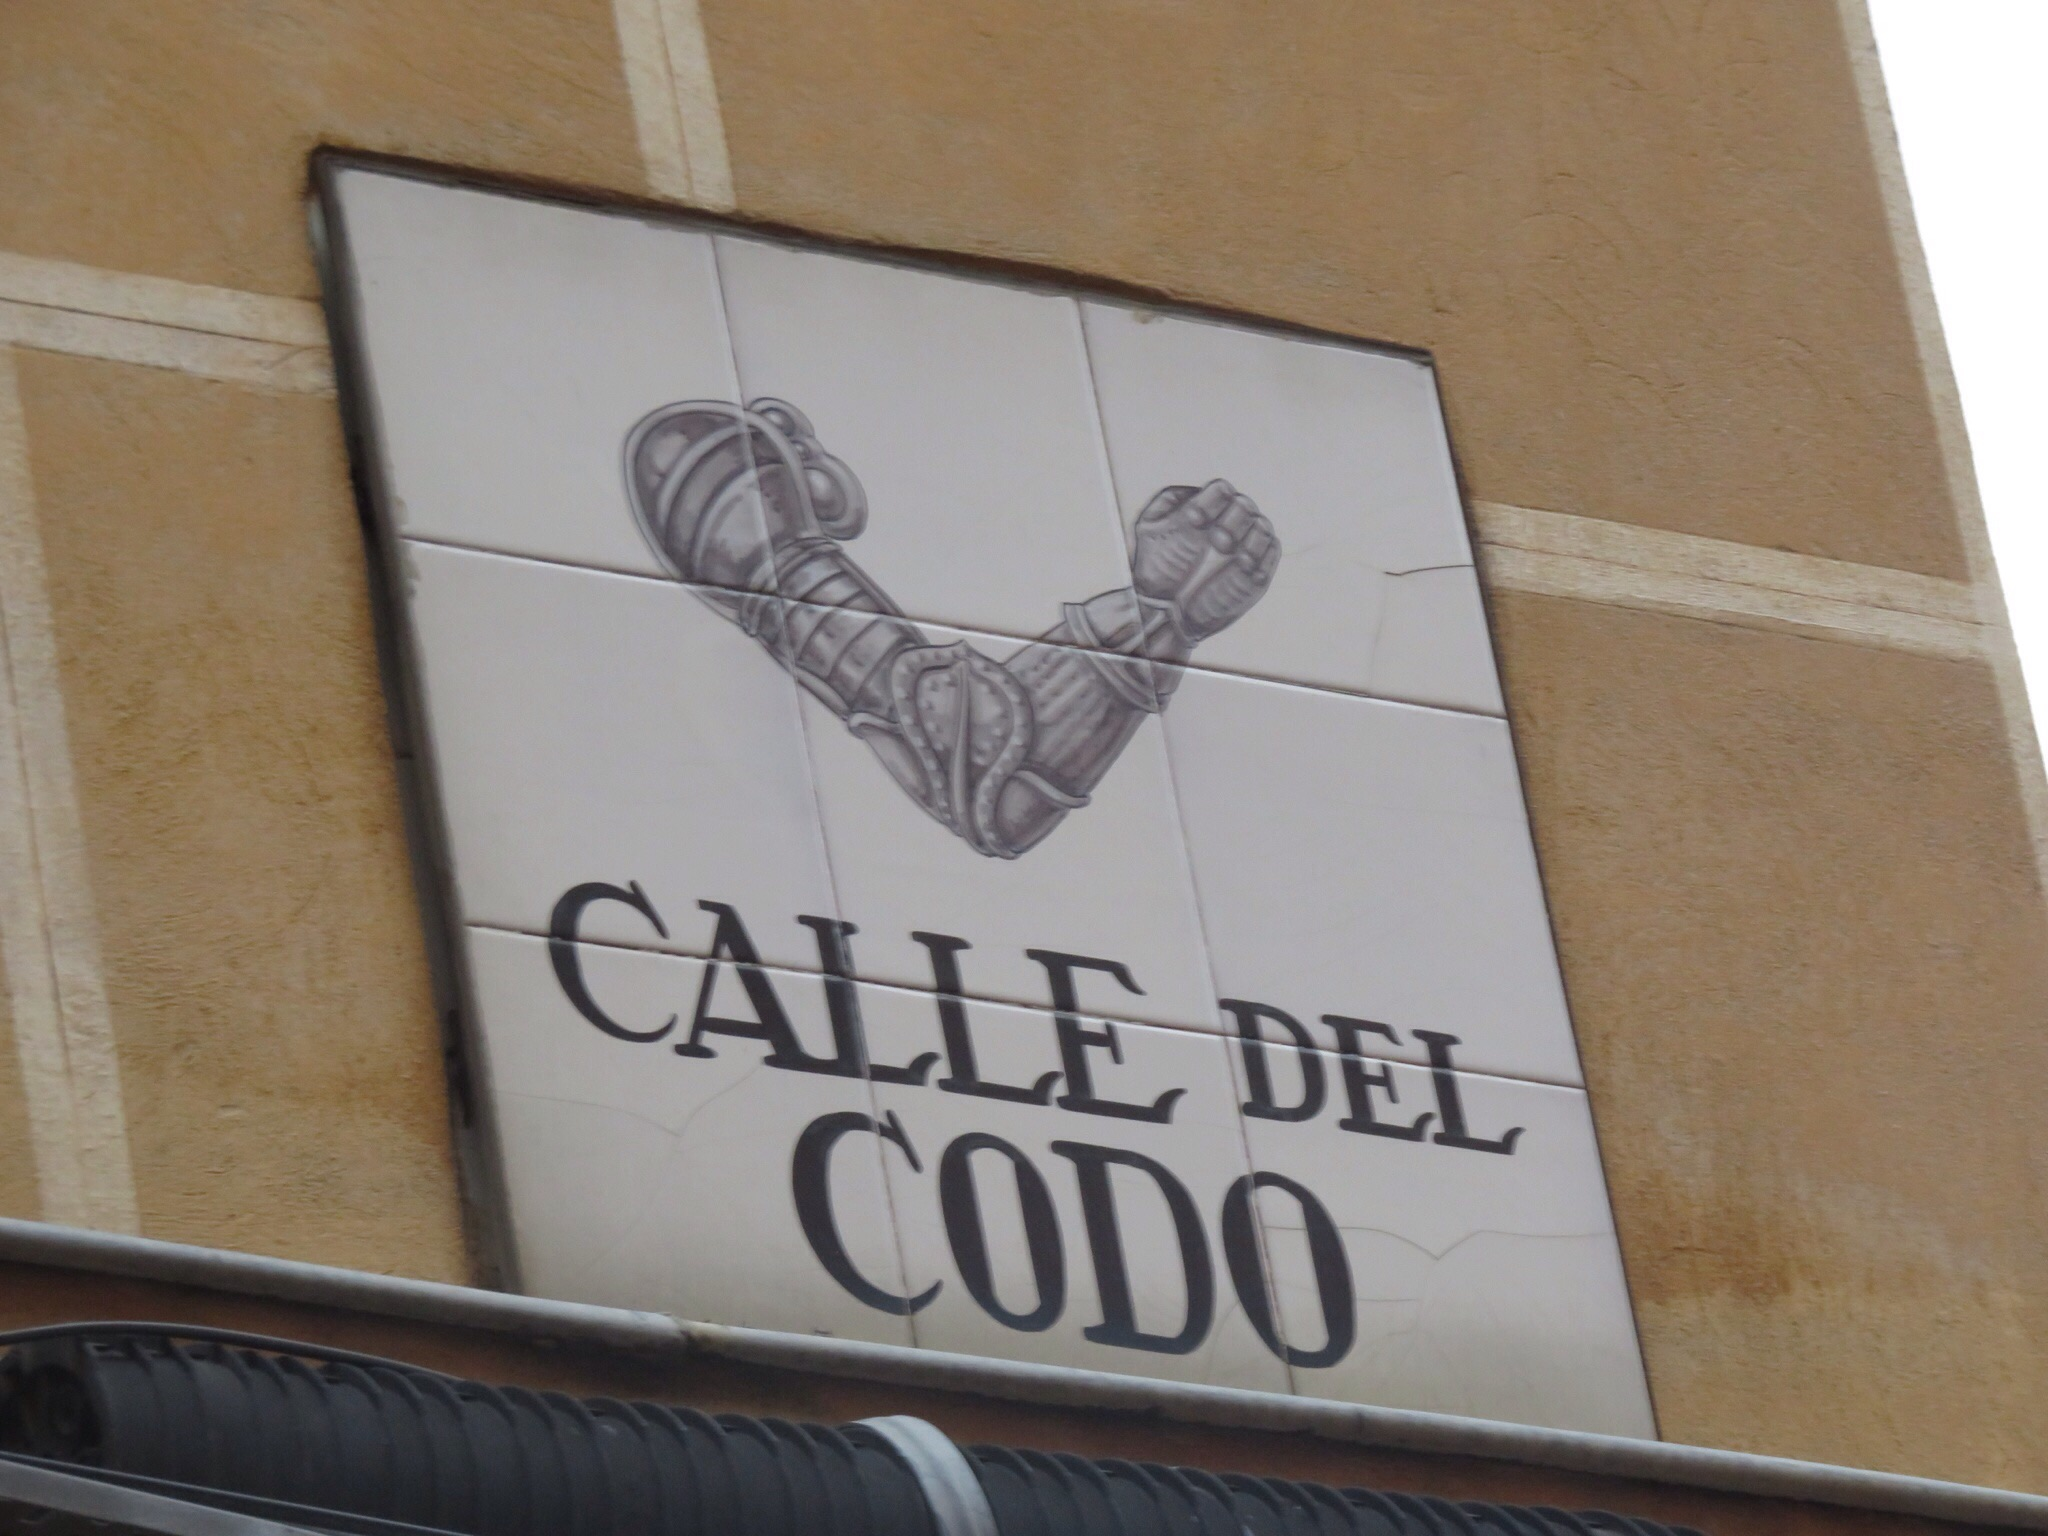 Most streets have old ceramic signs with a picture, for the illiterate or, in my case, those that don't read Spanish well! - this was the street where those that needed bits of armor would shop.